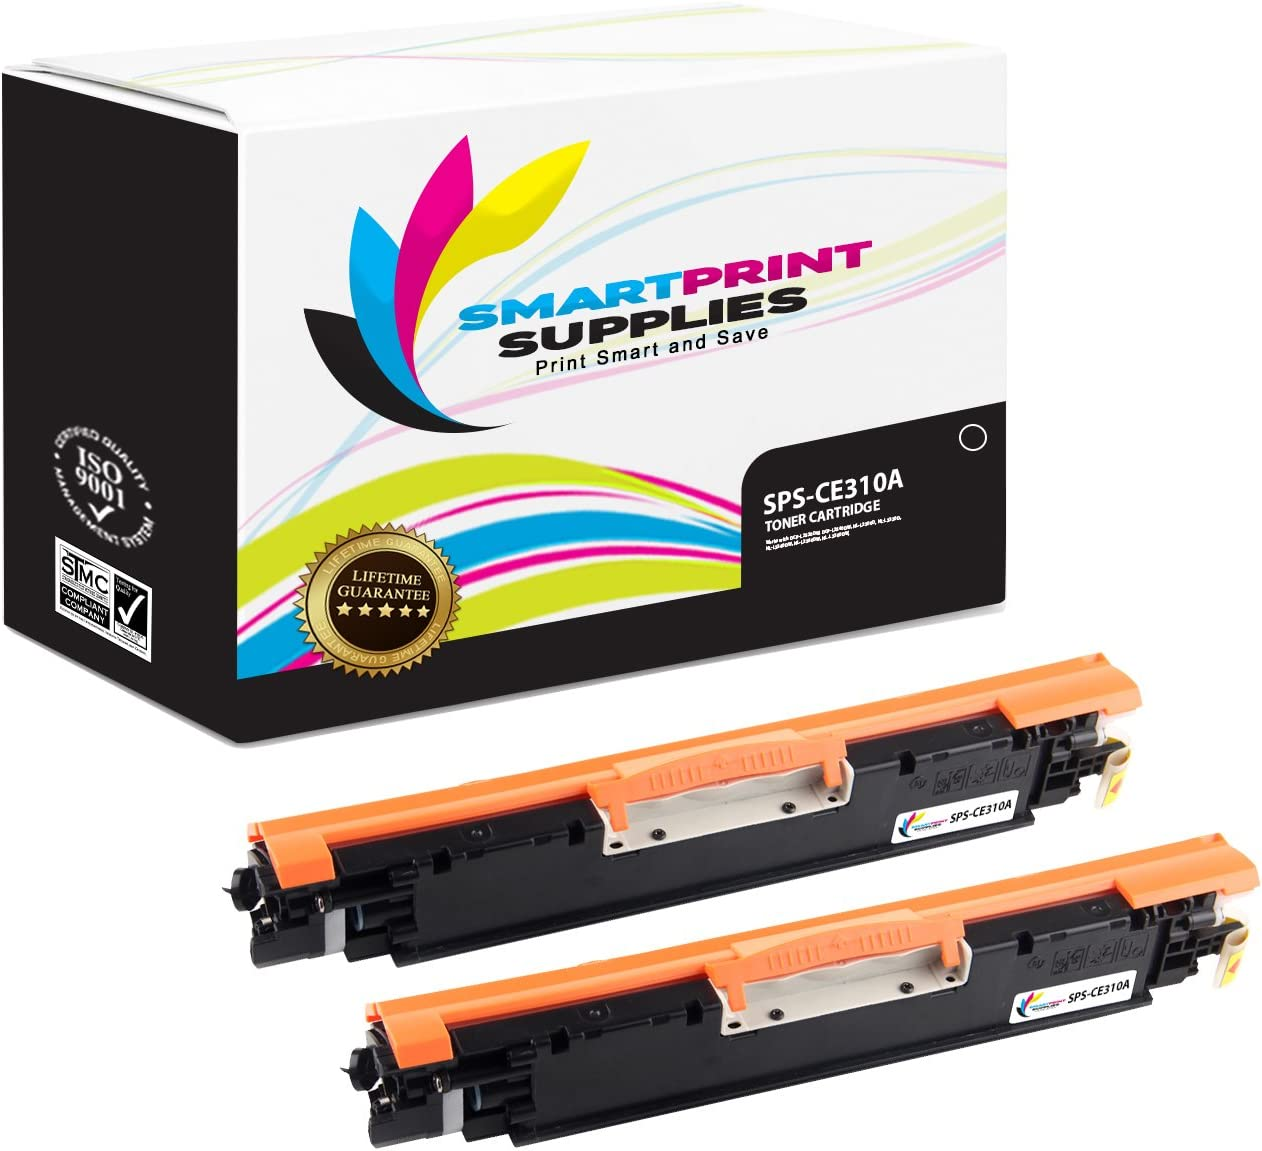 1,200 Pages Pro 100 MFP M175A Printers Smart Print Supplies Compatible 126A CE310A Black Toner Cartridge Replacement for HP Laserjet CP1020 CP1025 - 2 Pack